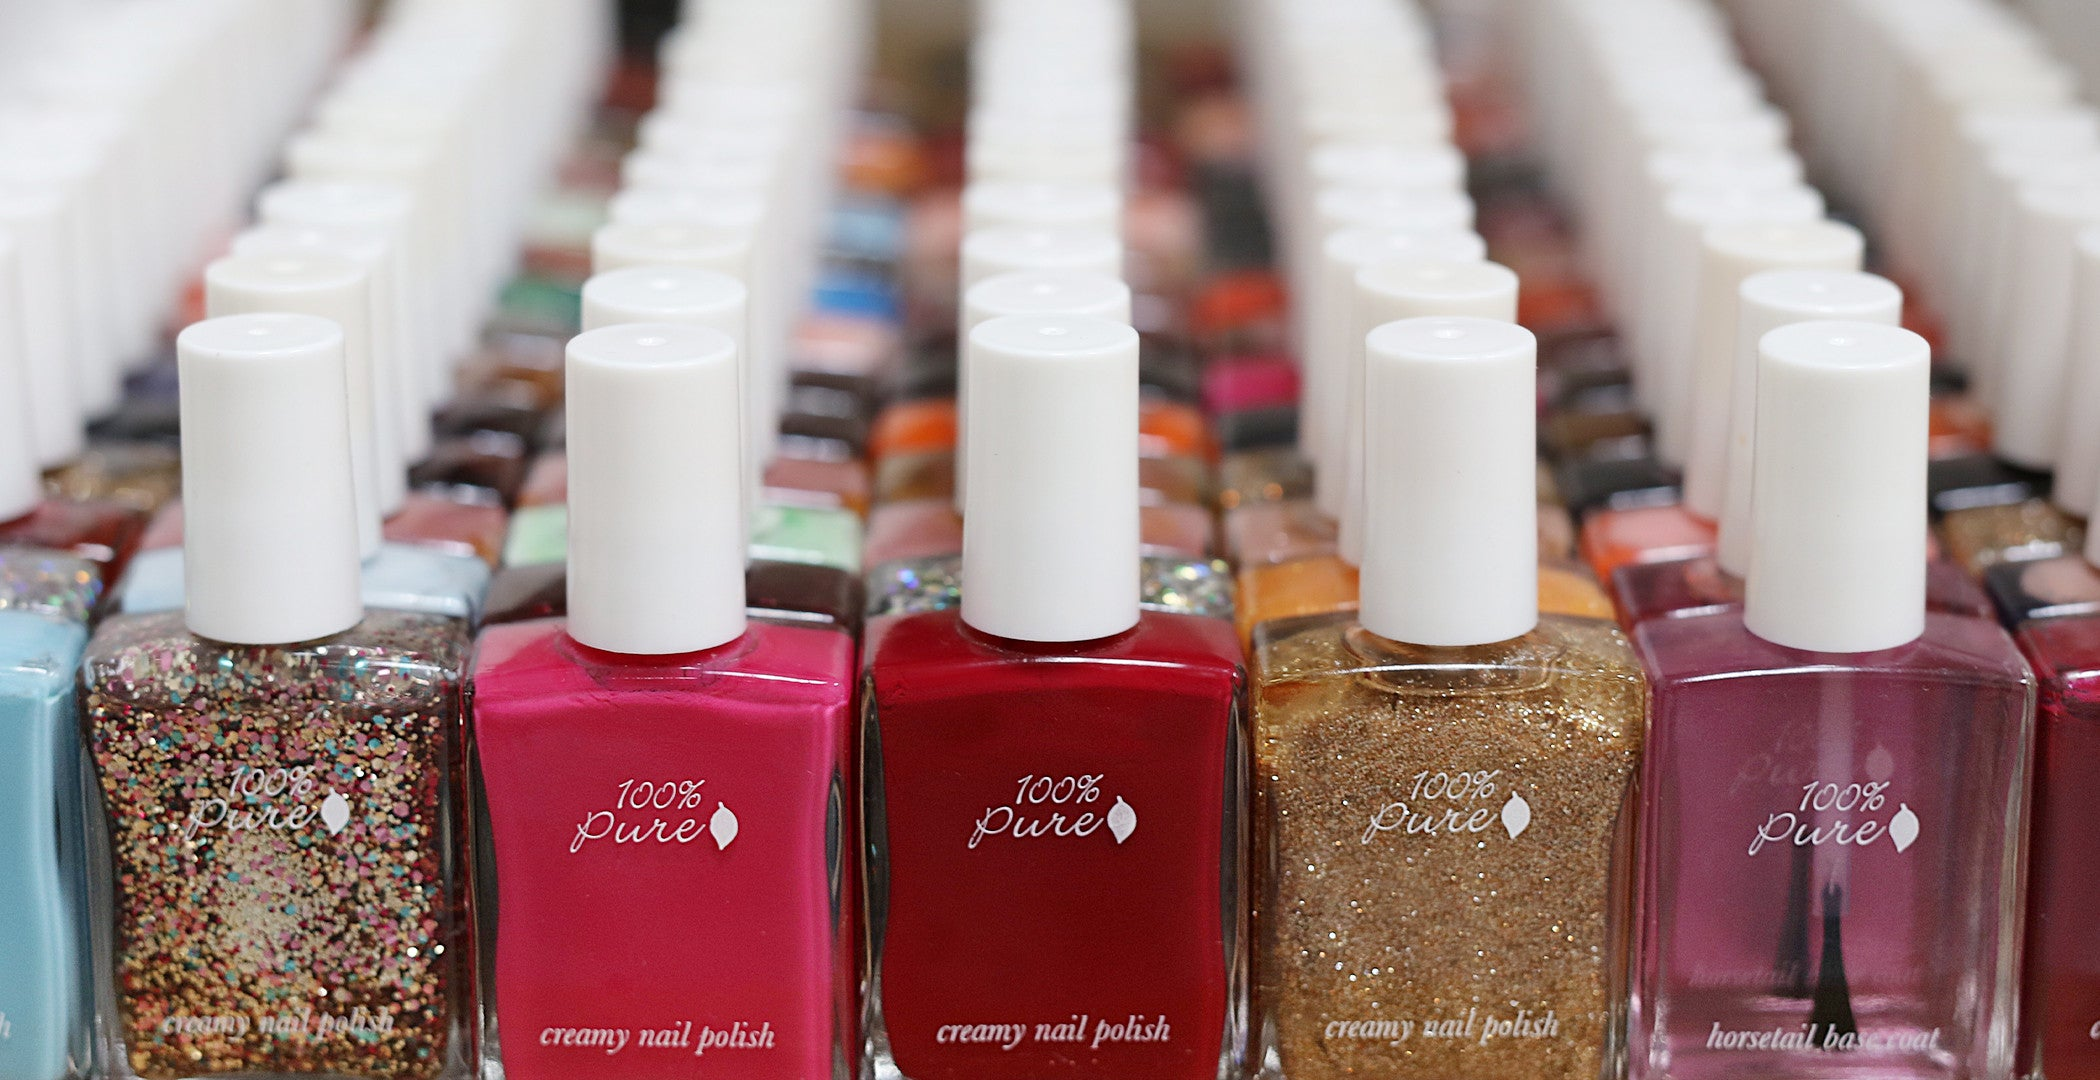 How to get the perfect manicure and pedicure at home 100% pure